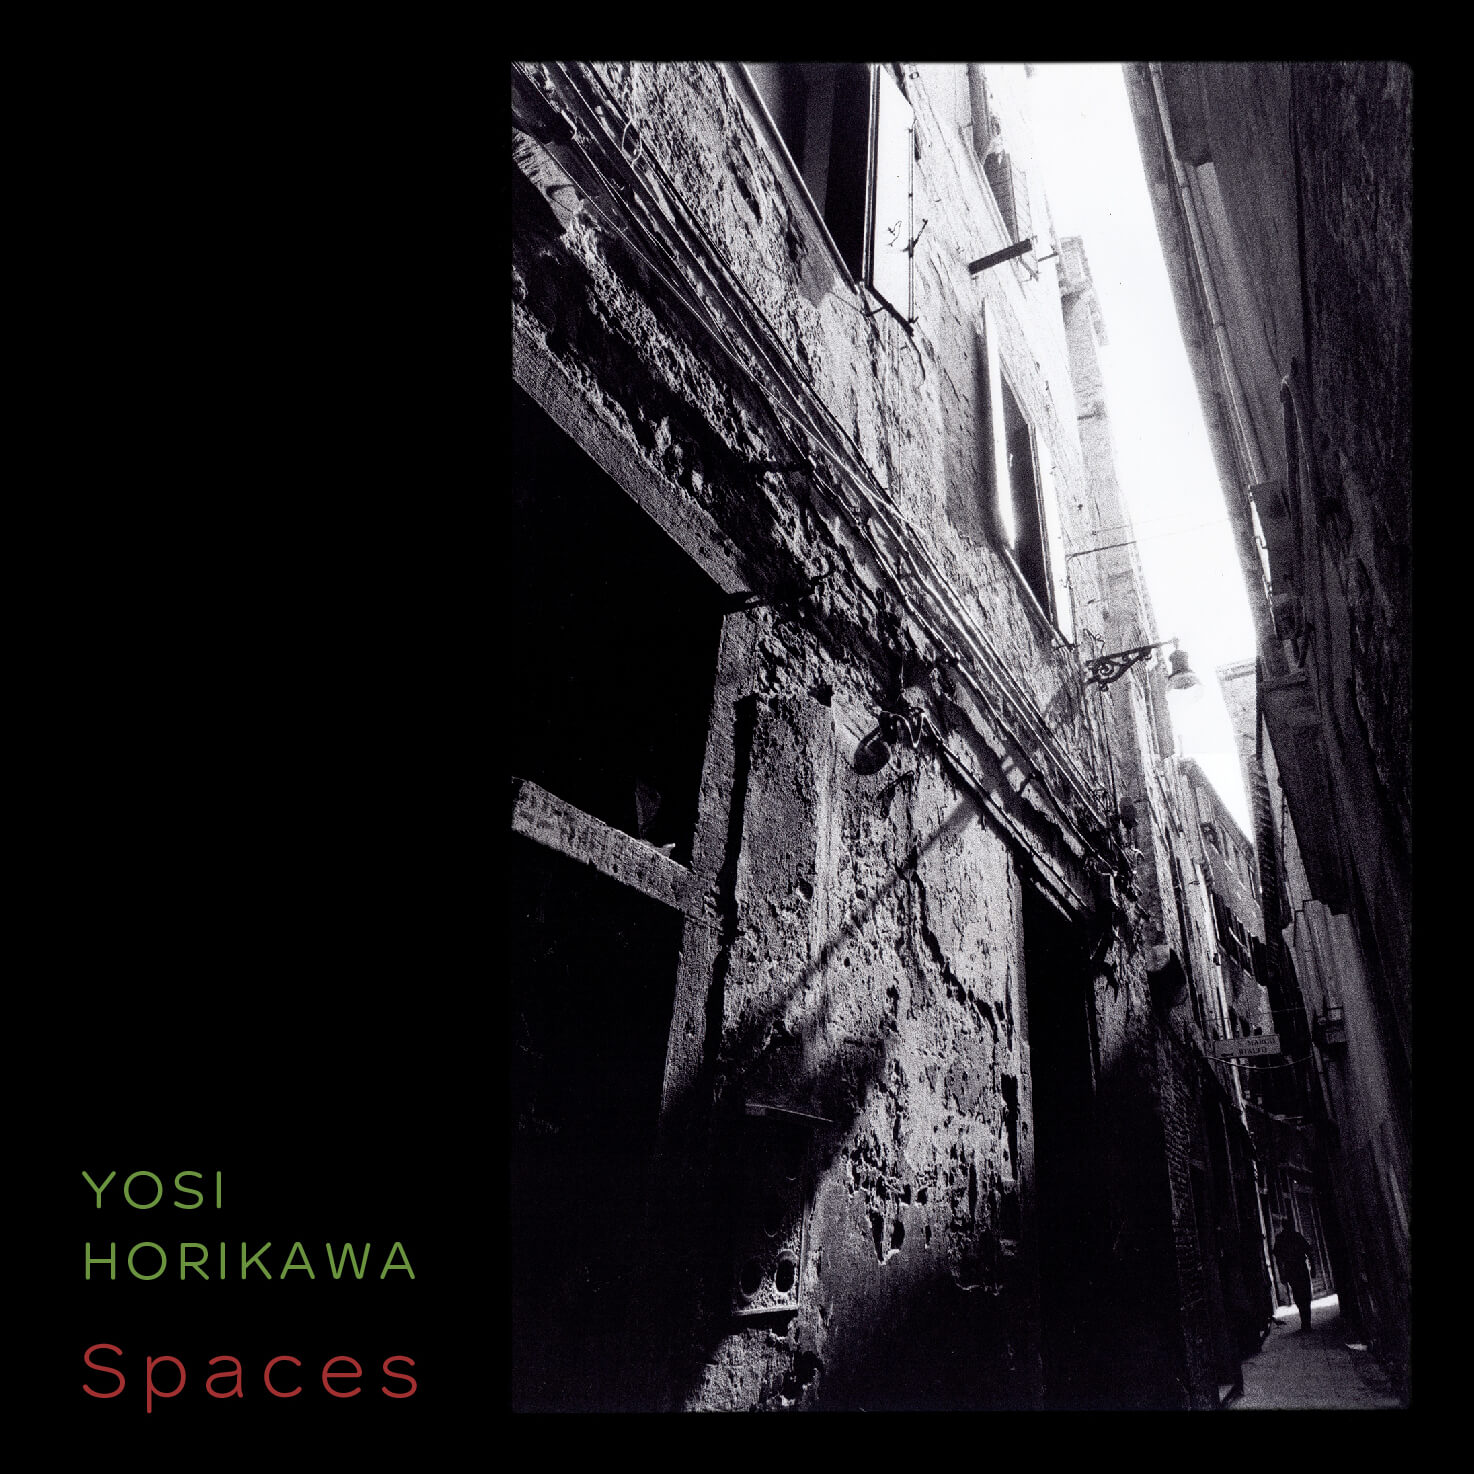 Yosi Horikawa - Spaces